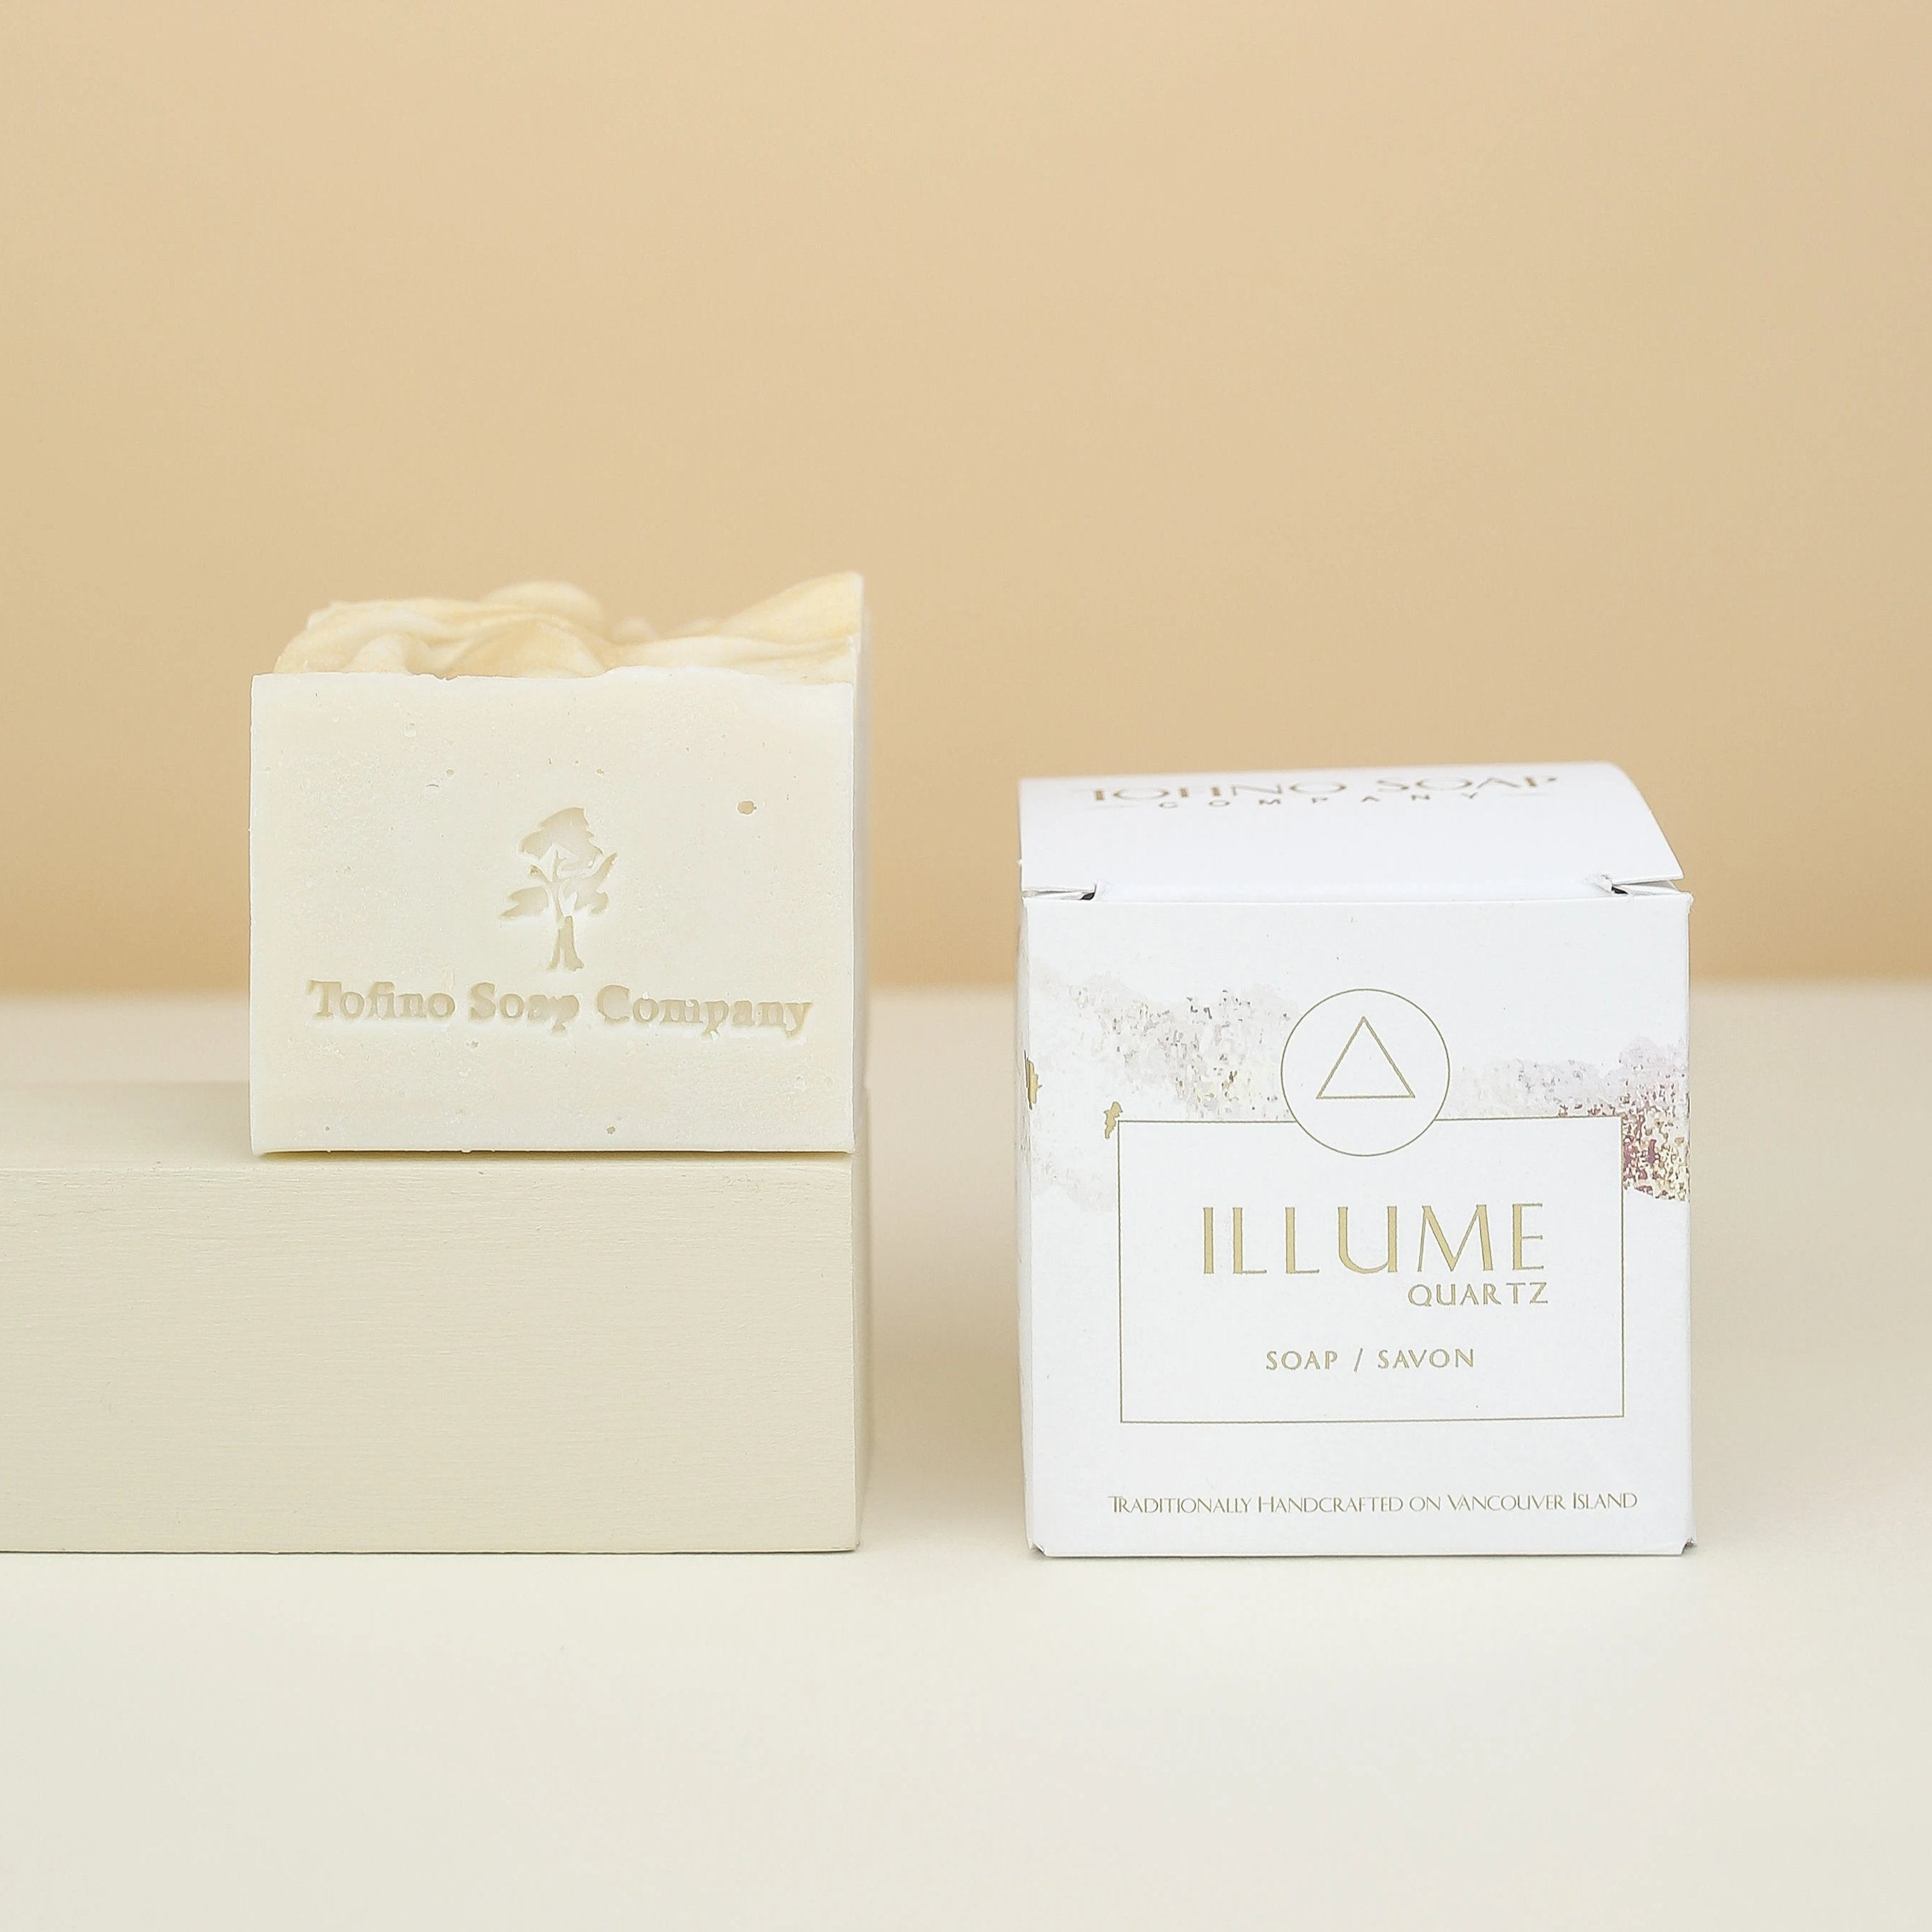 Tofino Soap | Illume - Tofino Soap Company ®